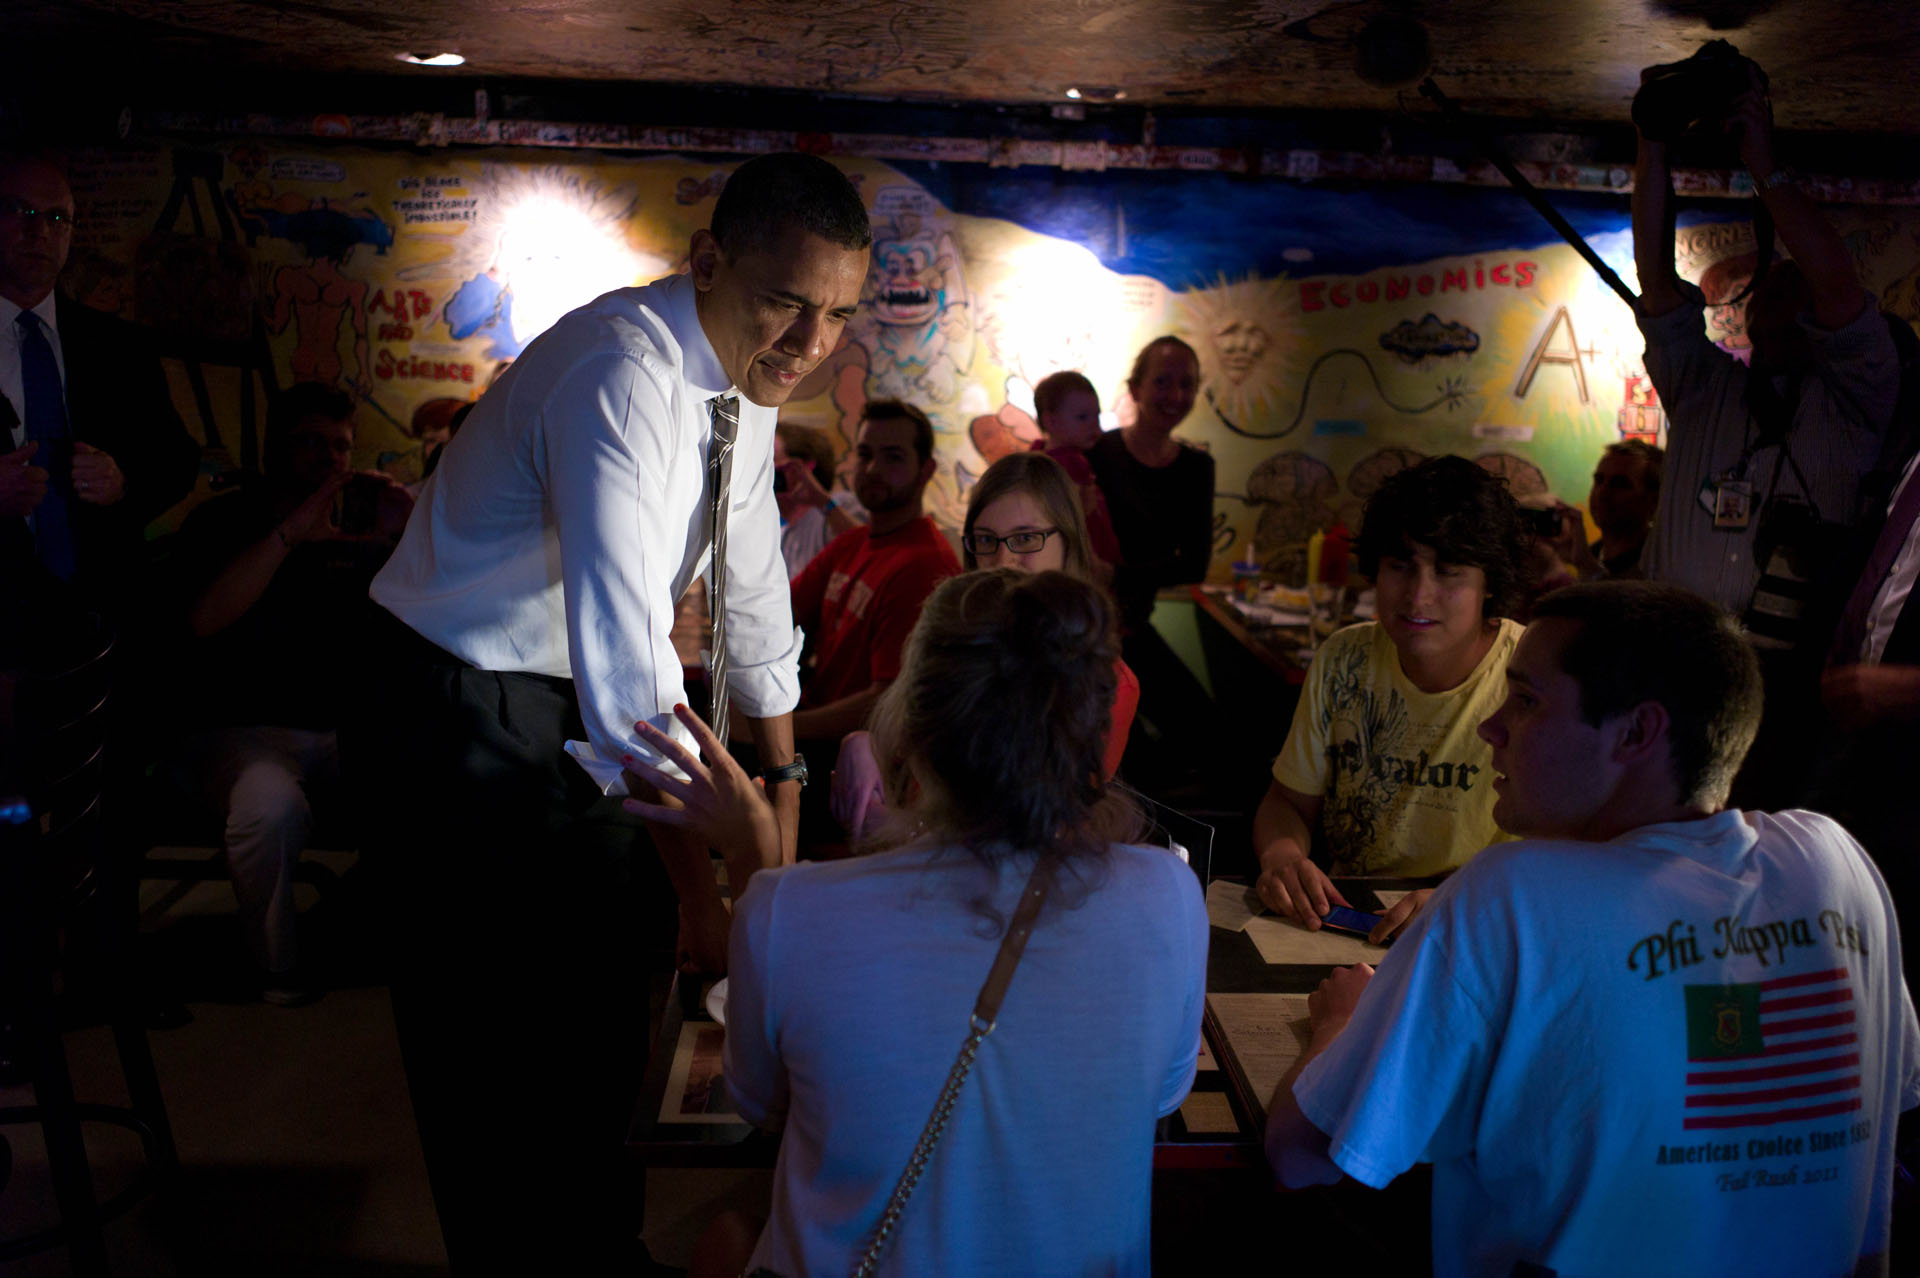 President Obama talks to patrons at the Sink in Boulder, Colo